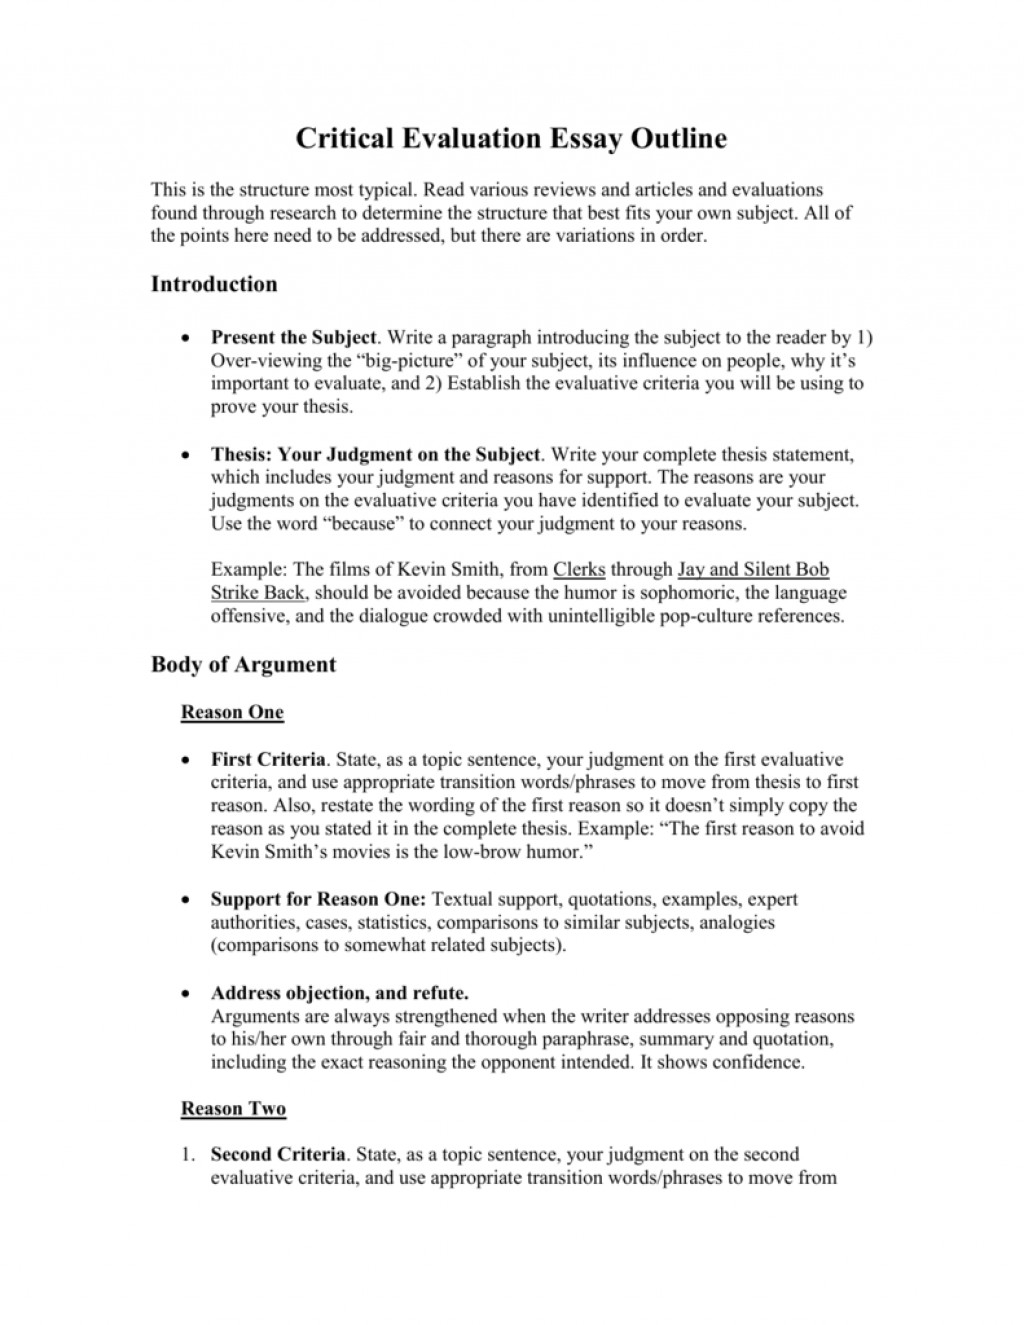 012 007278317 1 Essay Example Evaluation Formidable Examples Critical Outline Thesis Course Large